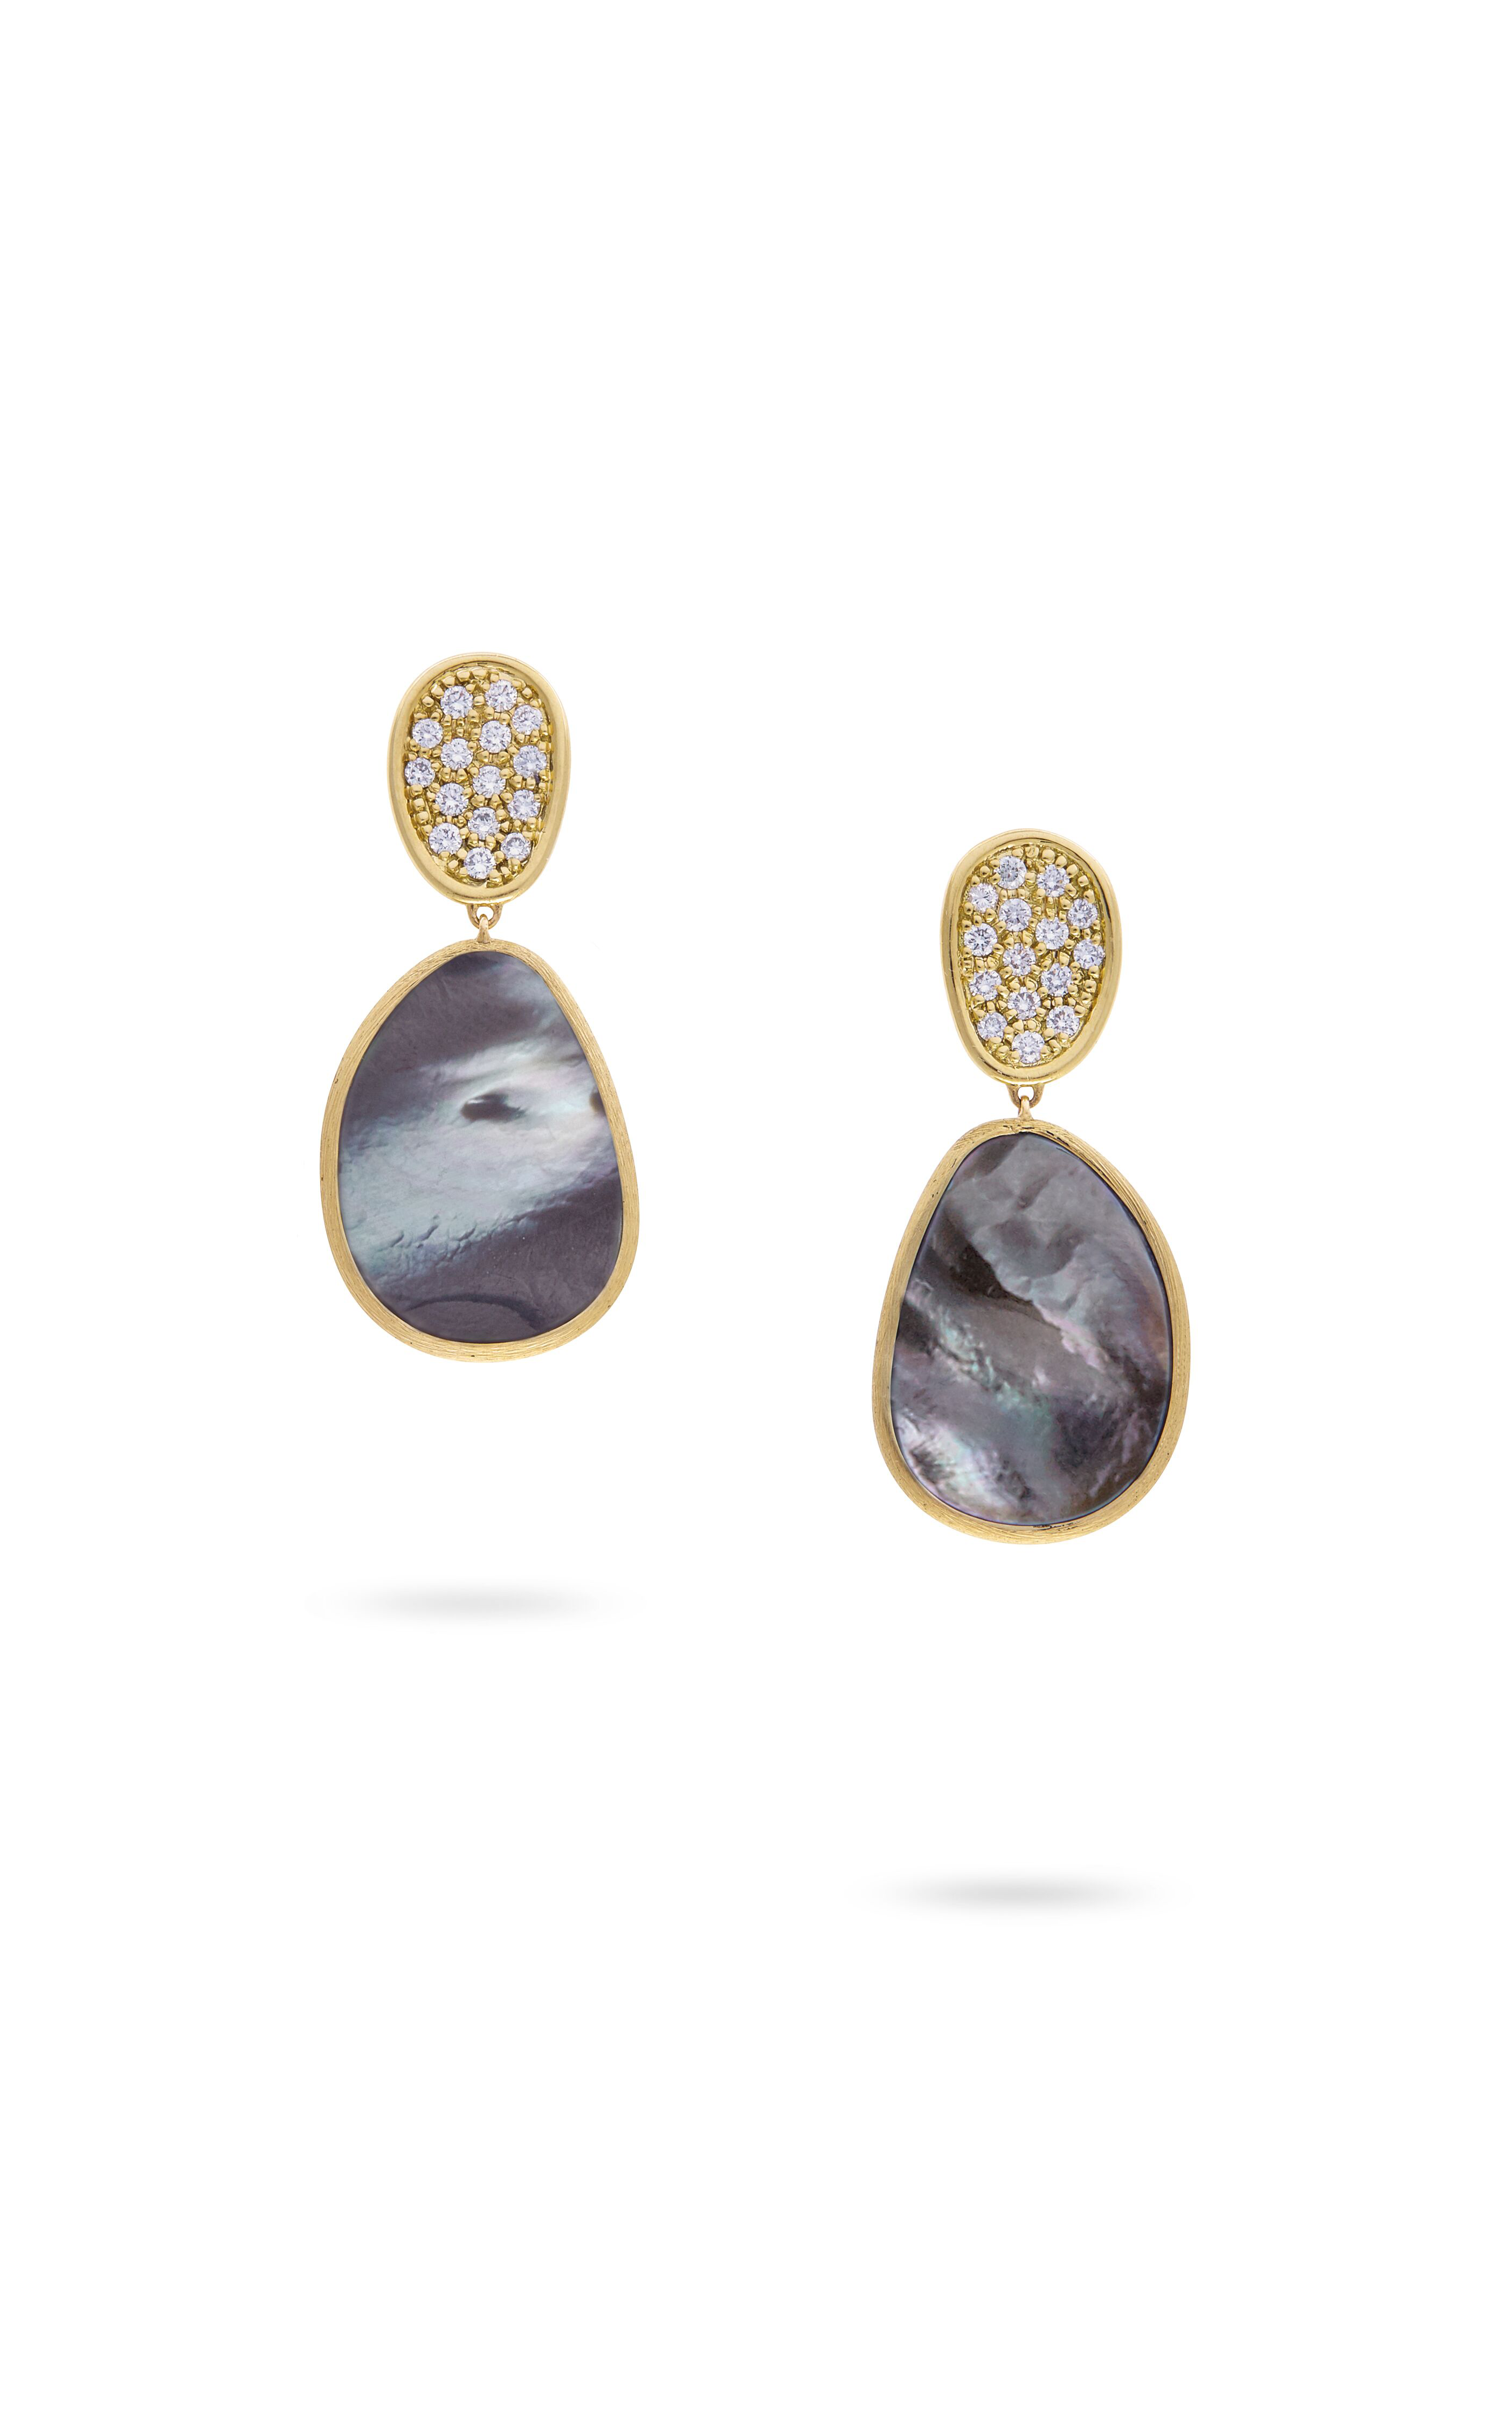 Marco Bicego Lunaria Mother of Pearl Earrings OB1403-B MPB Y product image